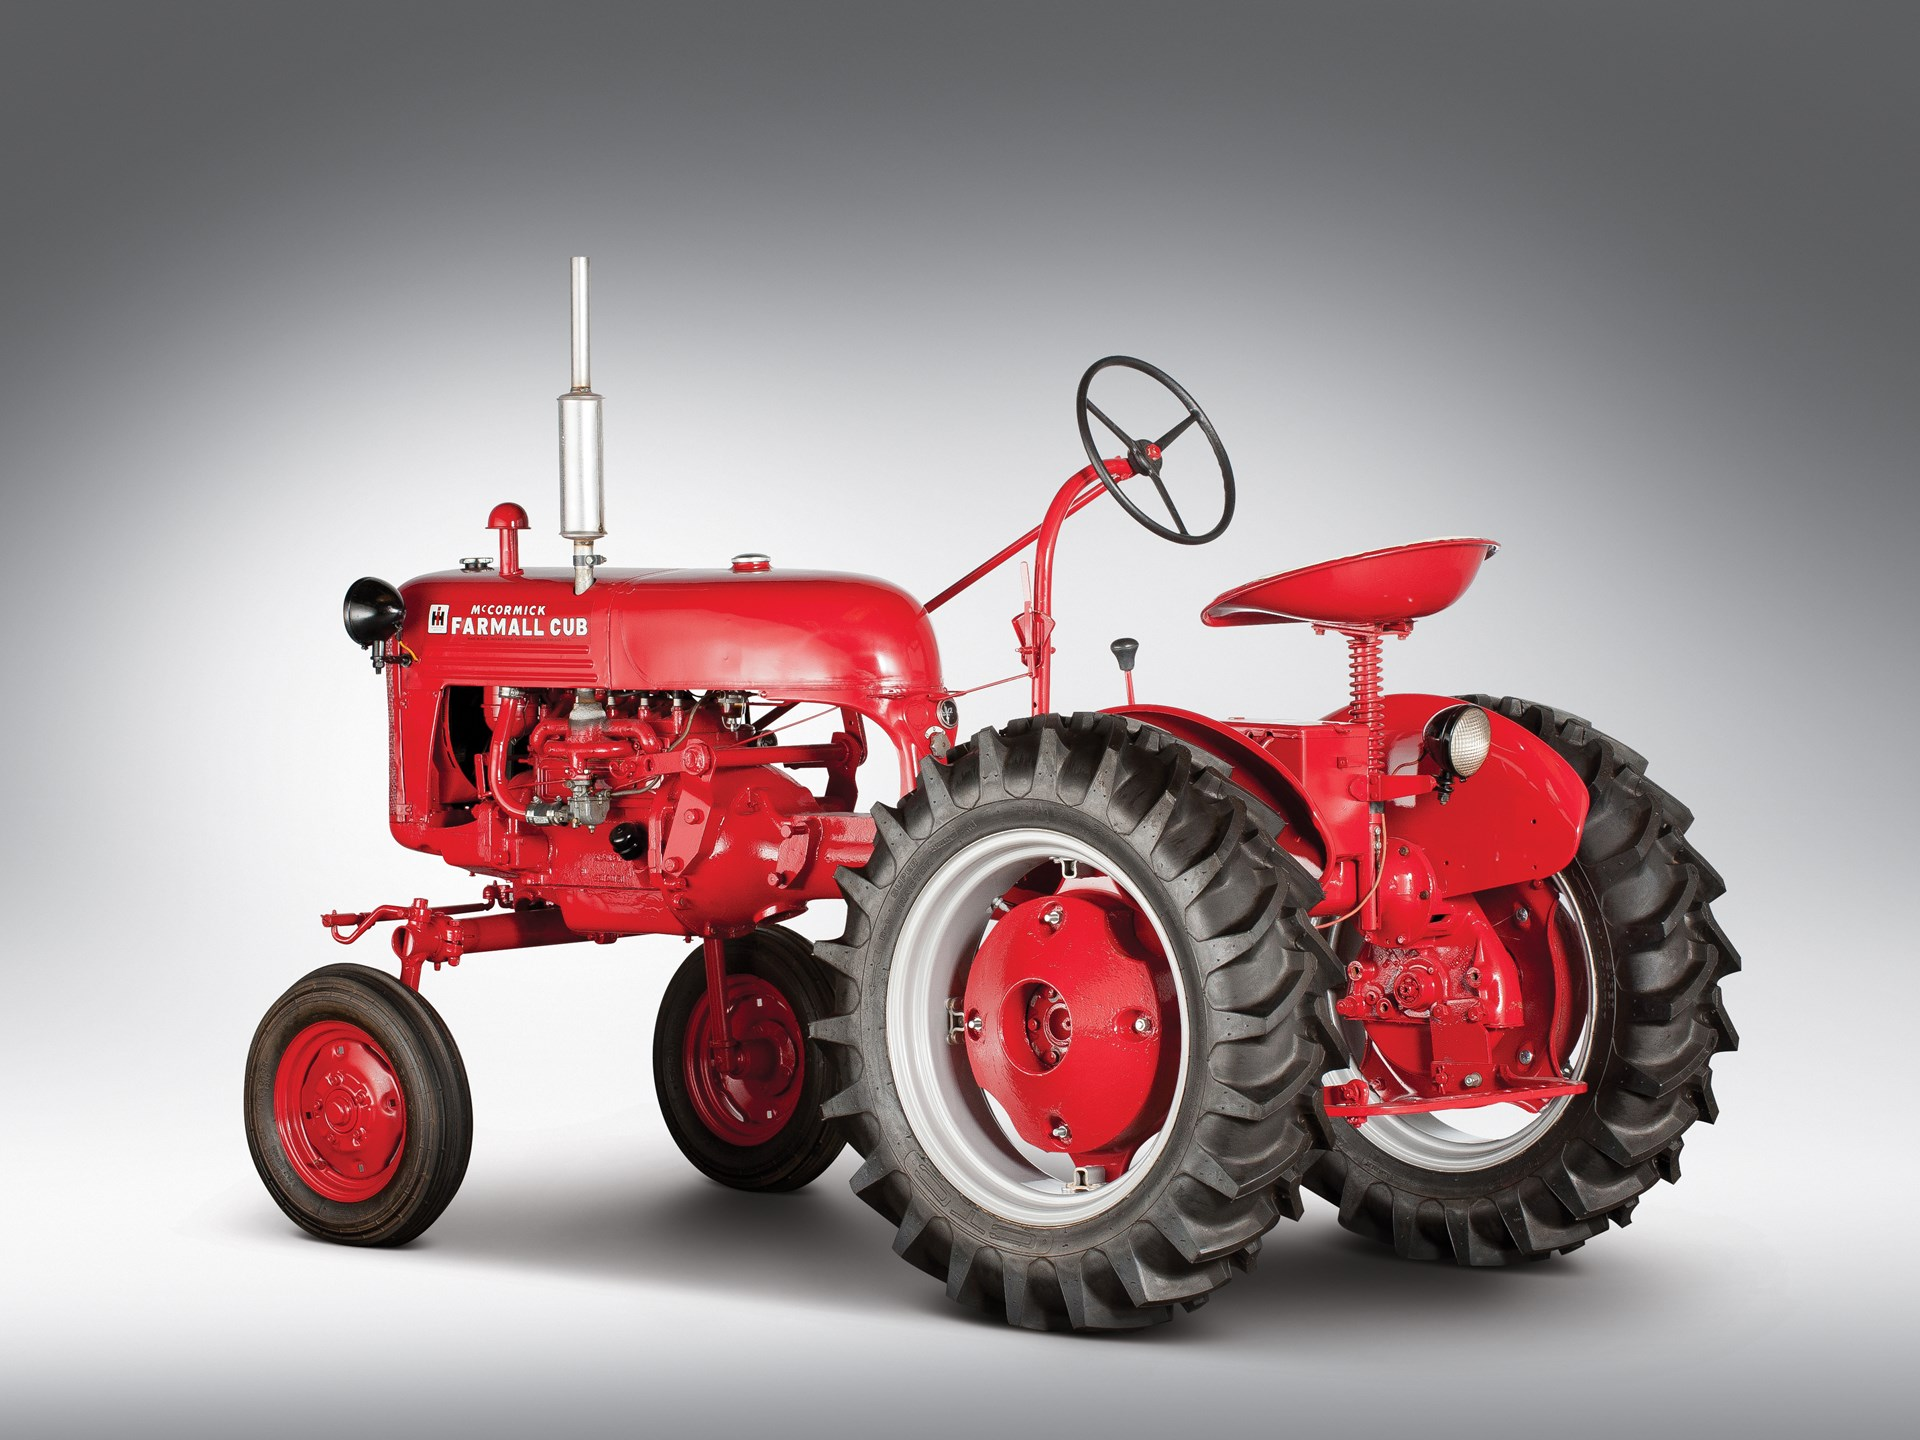 RM Sotheby's - 1948 McCormick Farmall Cub Tractor | The